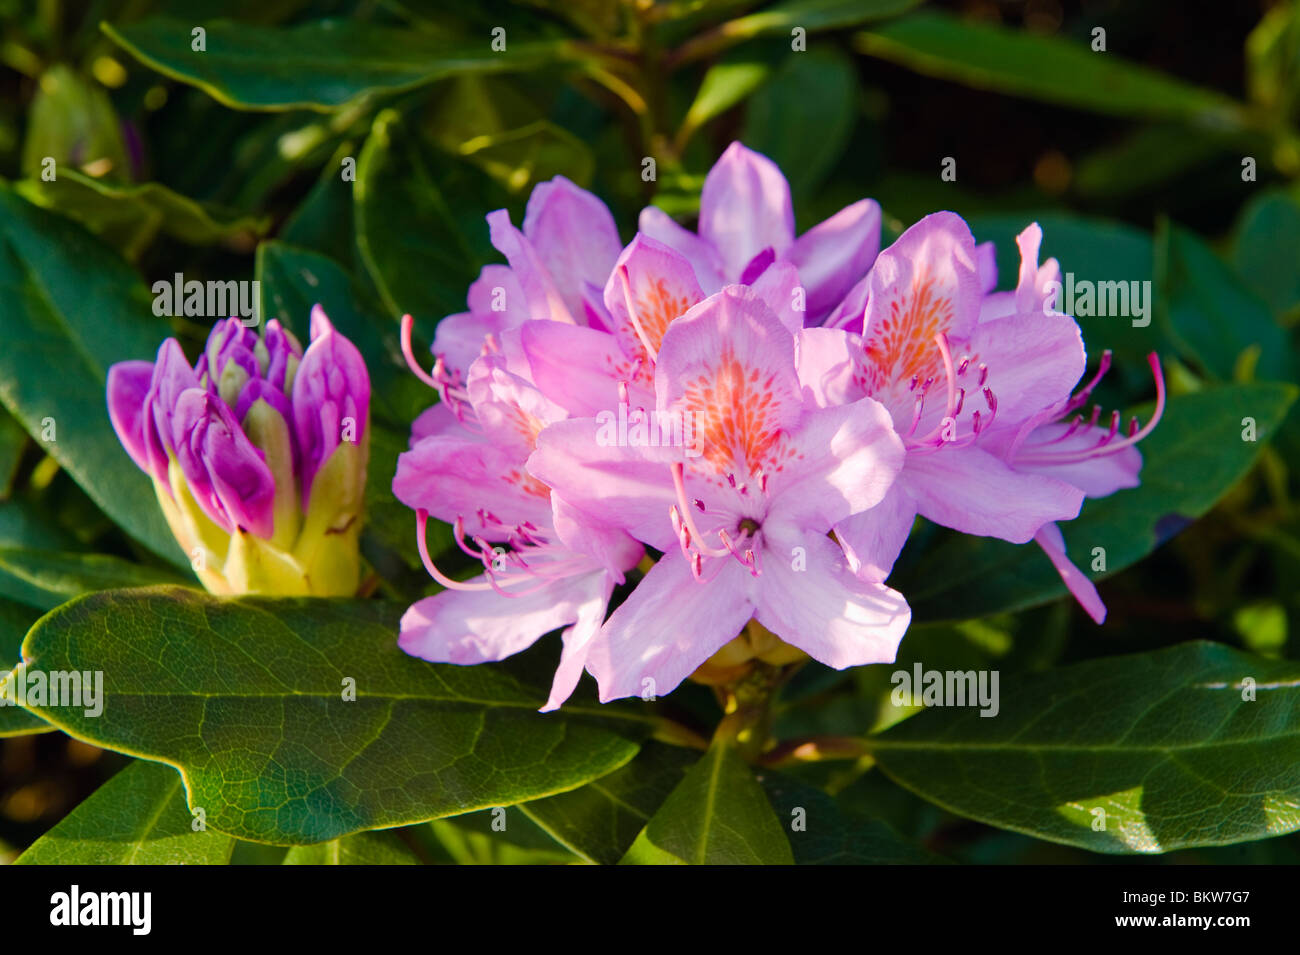 Rhododendron flower (Rhododendron ponticum) in Grizedale, near Garstang, Lancashire, England Stock Photo